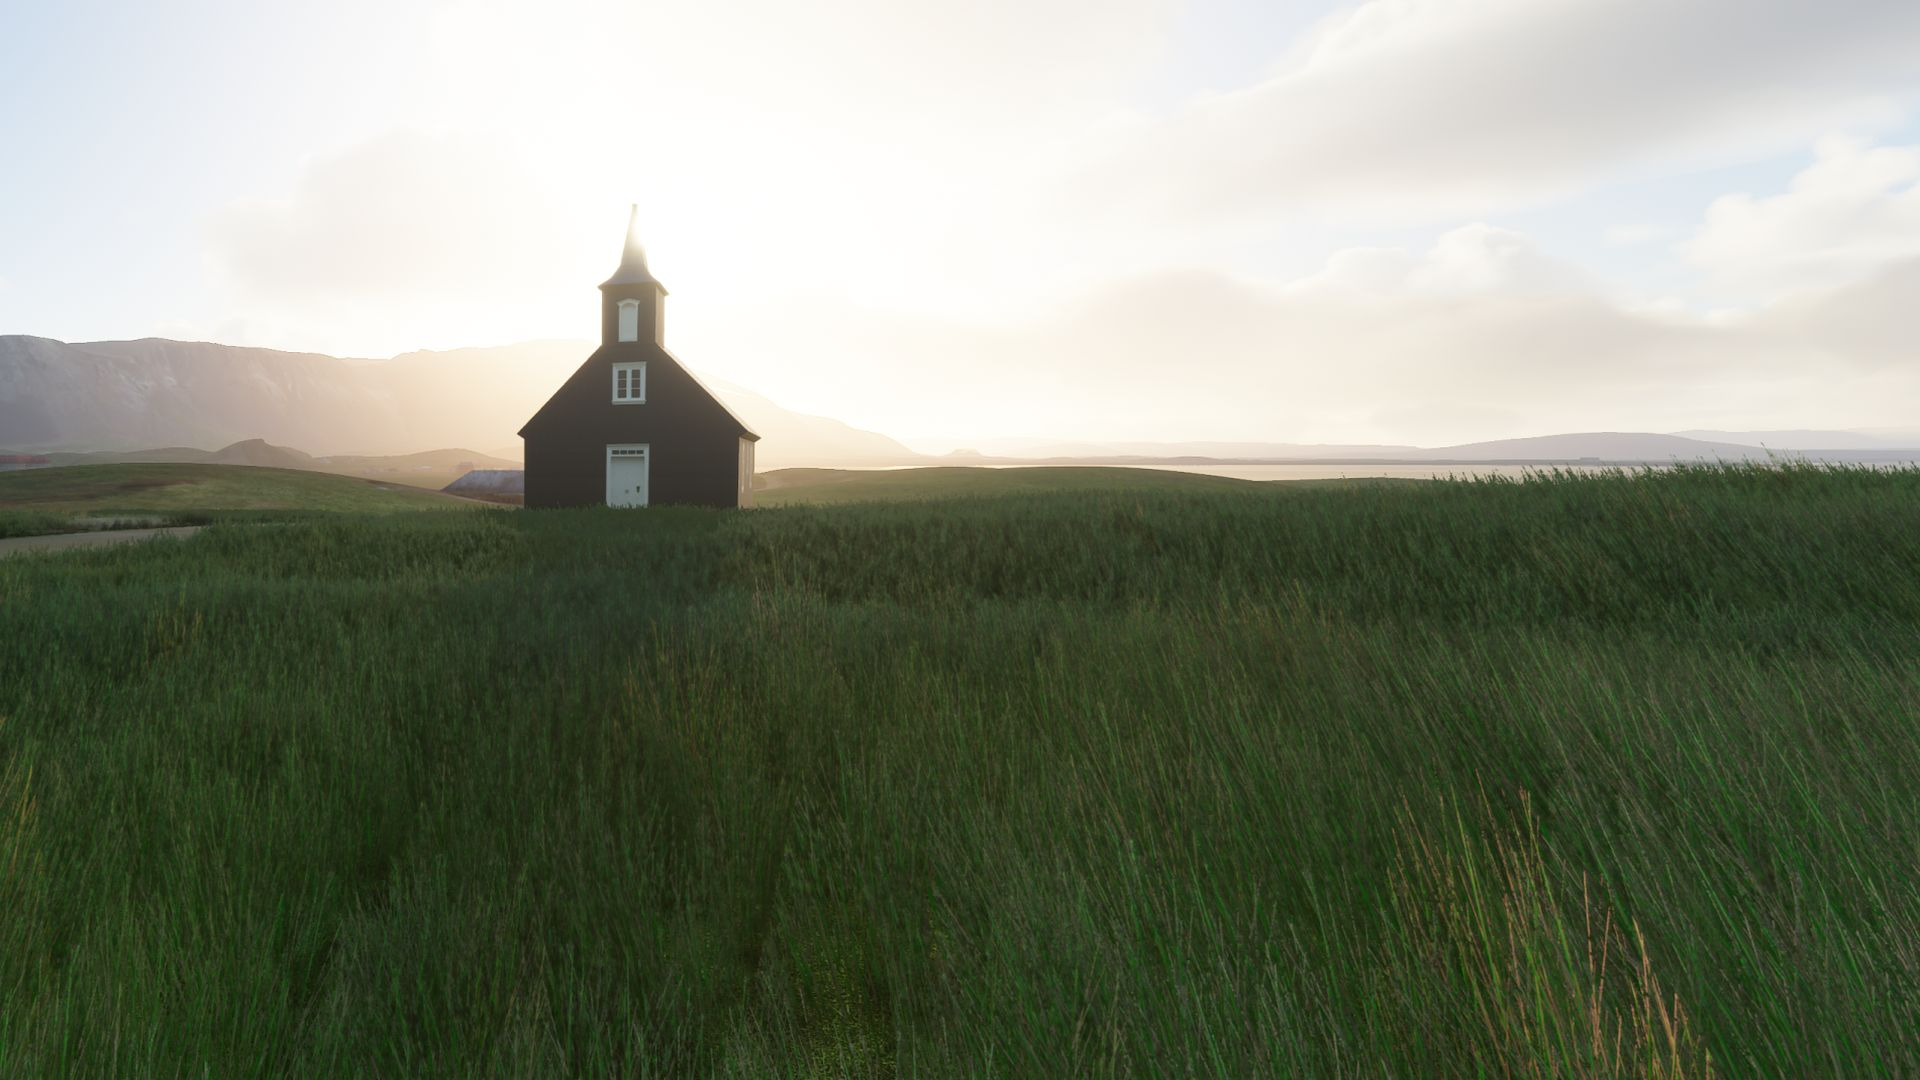 A Microsoft Flight Simulator screenshot showing a single wooden church in Iceland